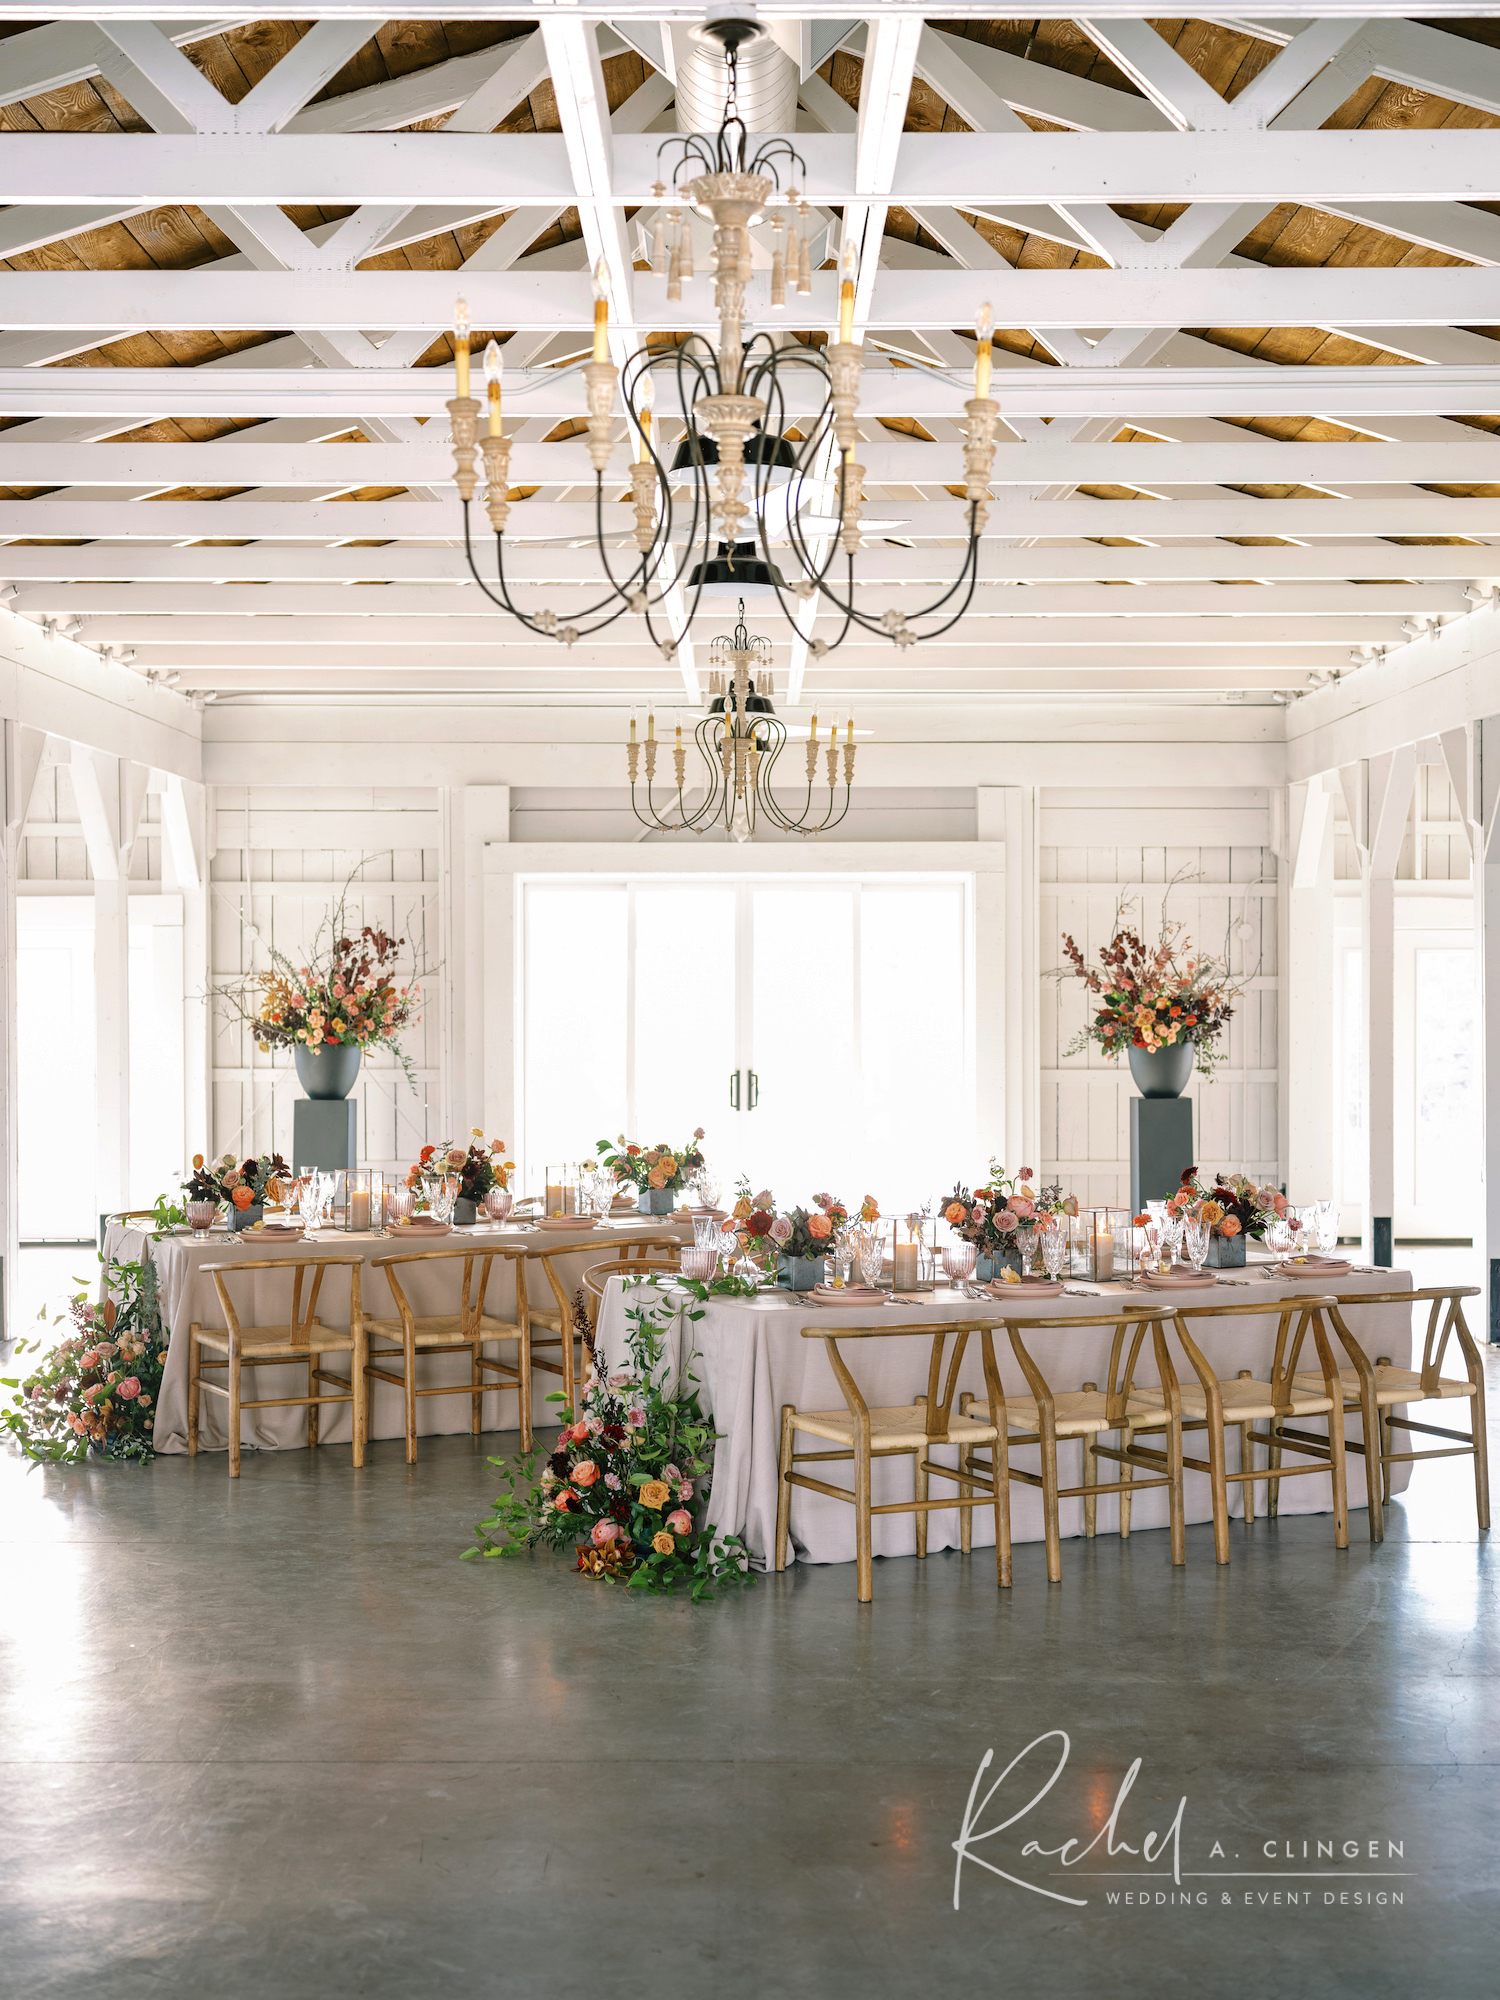 braestone barn wedding decor